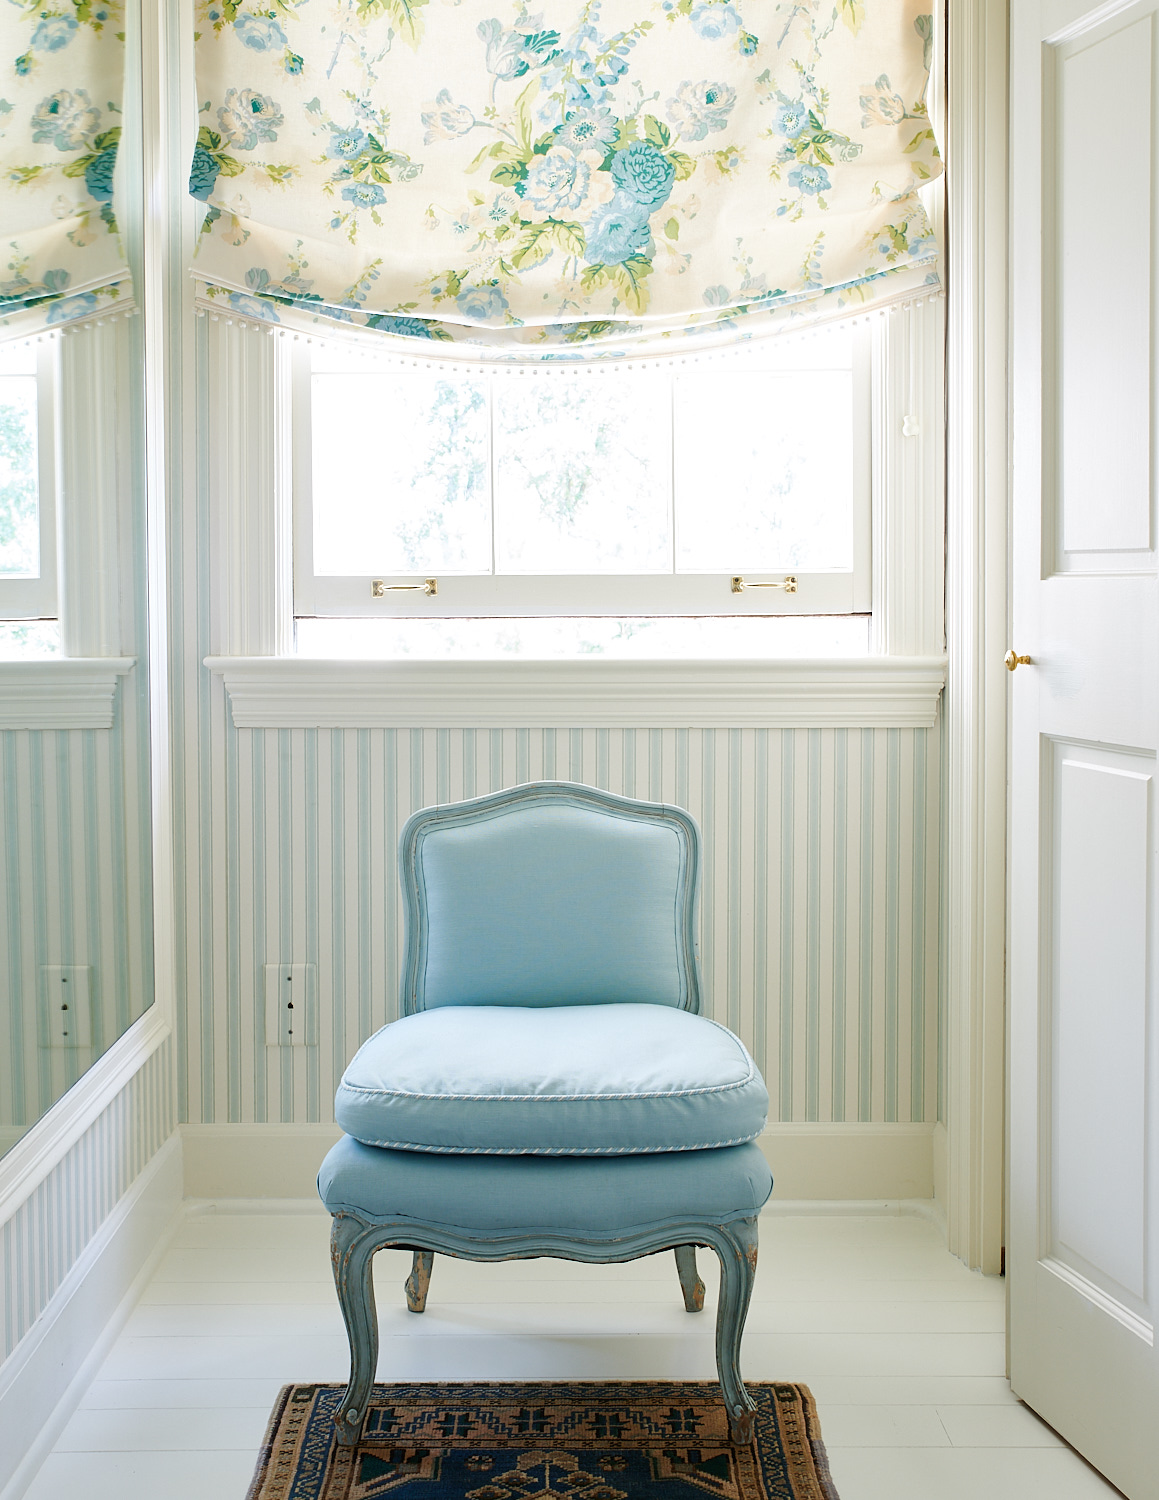 Floral roman shades with baby blue upholstered chair and matching trimmed cushion